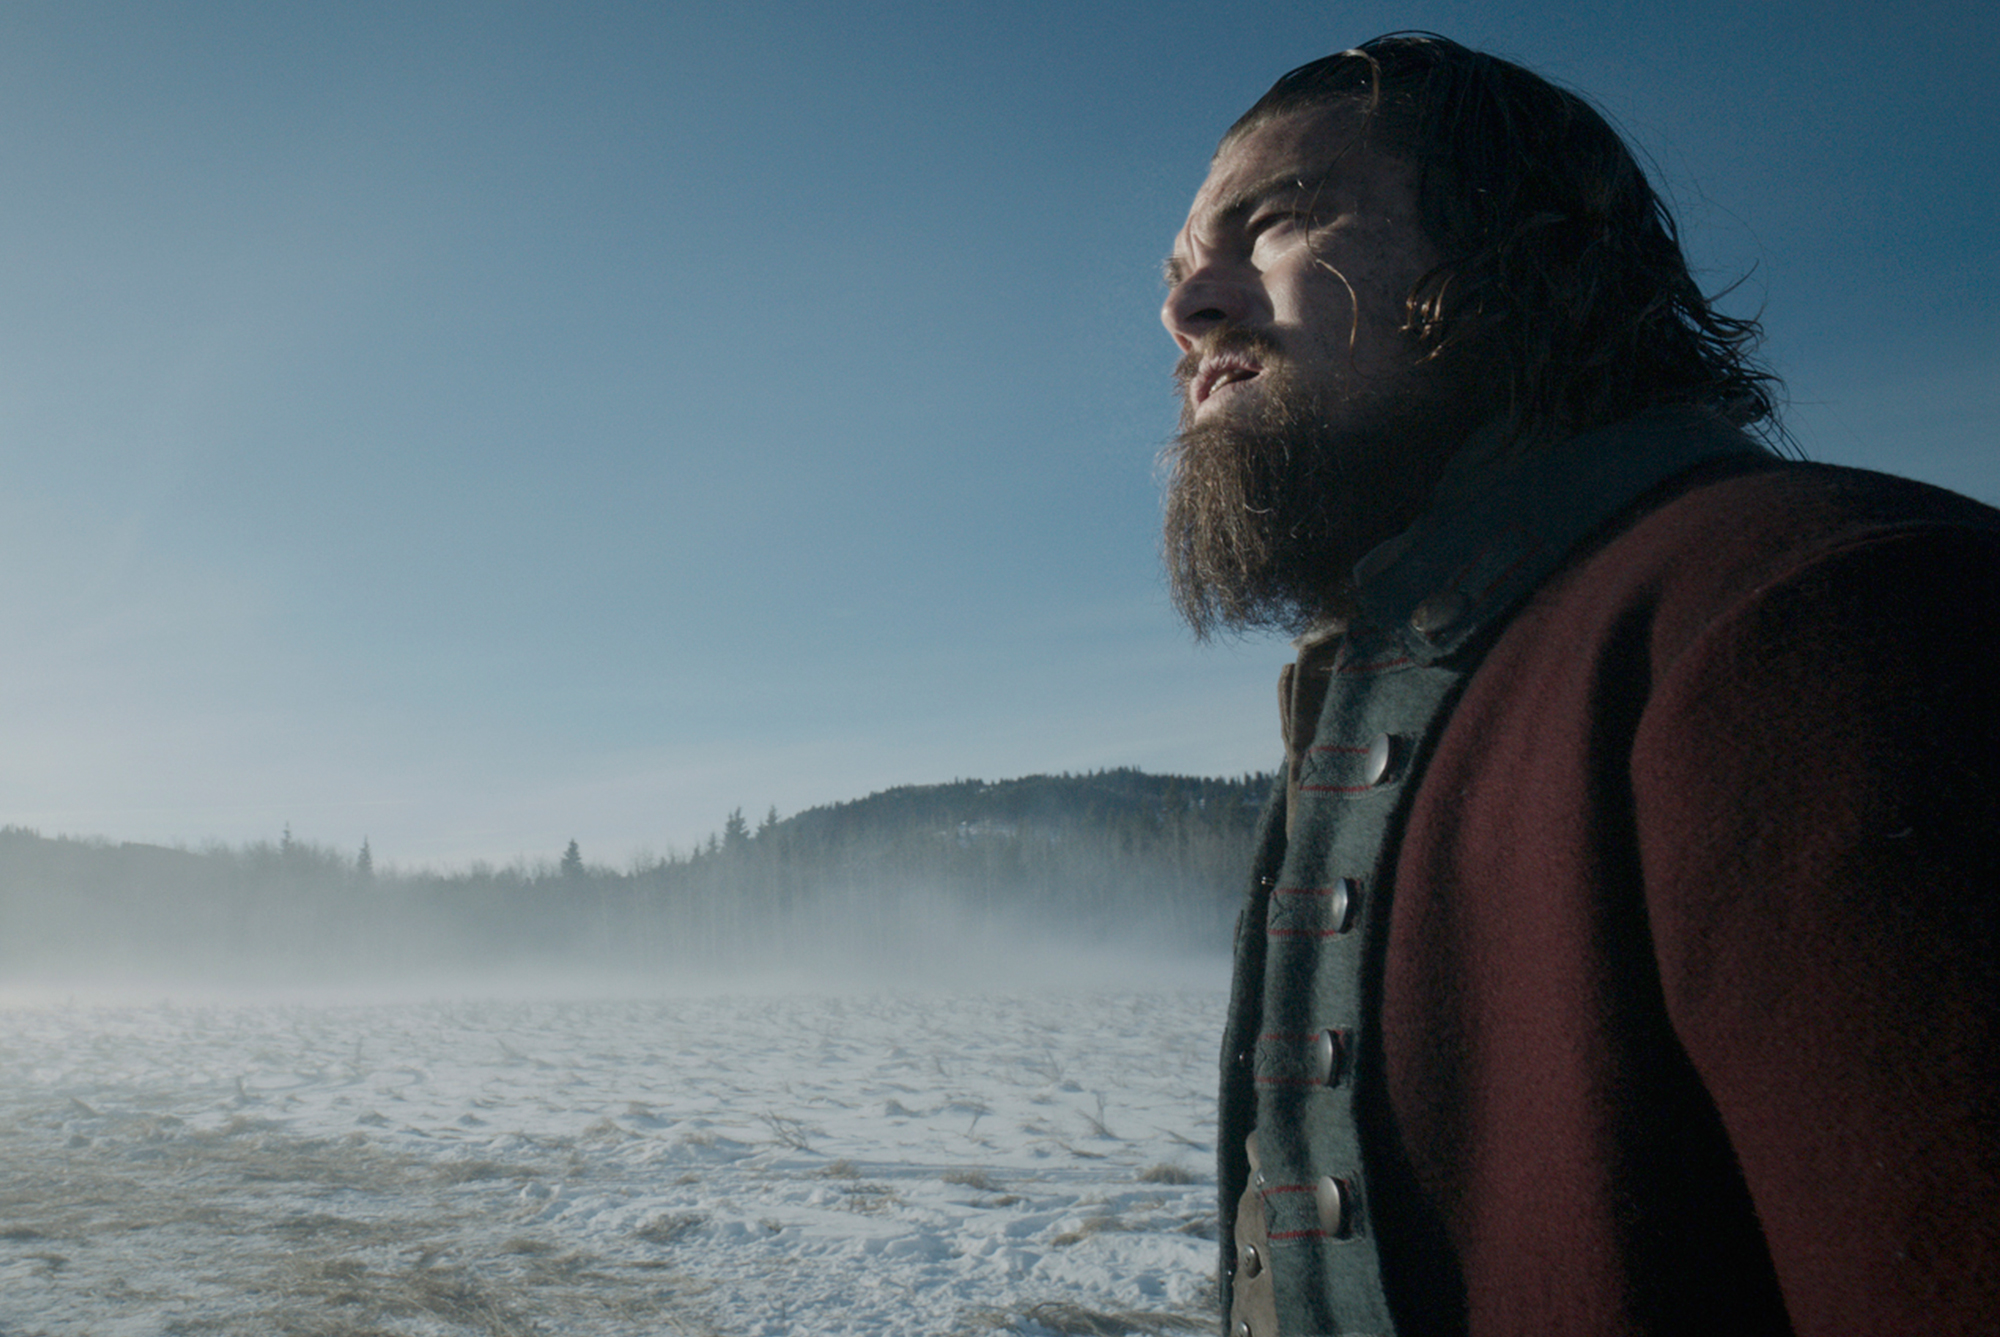 I visited the set of The Revenant and followed in the footsteps of Leonardo DiCaprio